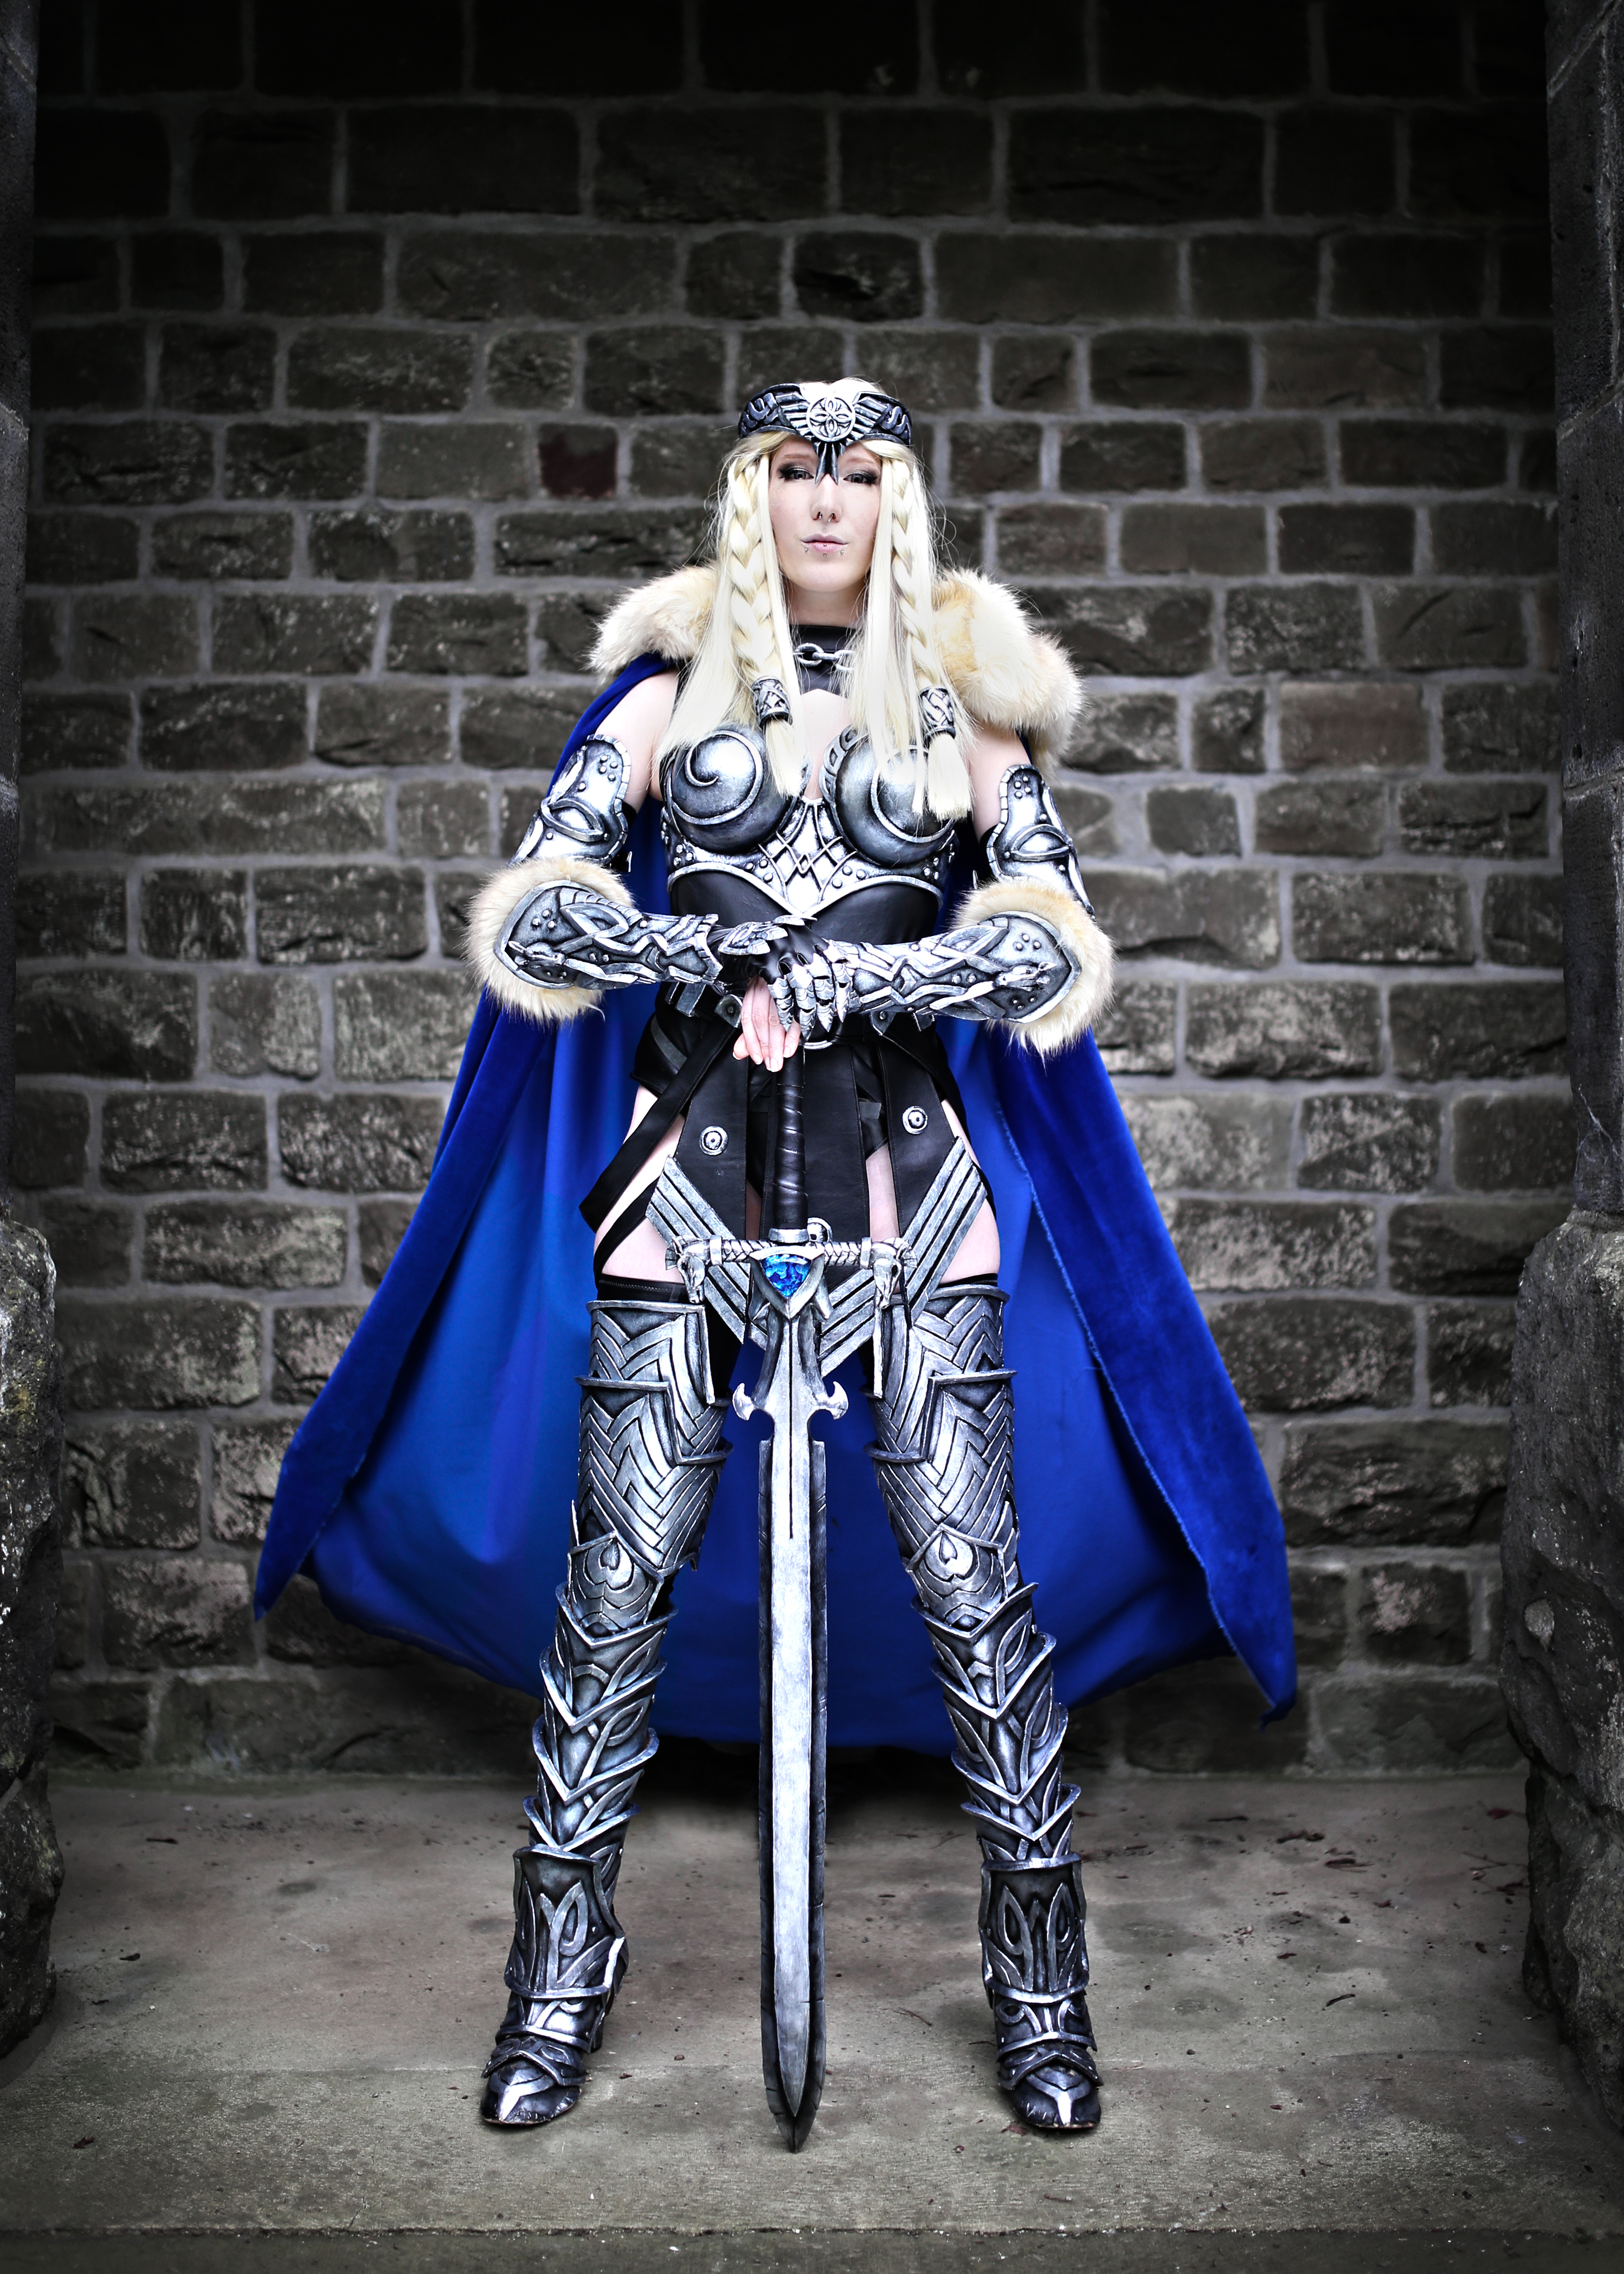 No, its not in-game, this is Lightning cosplay